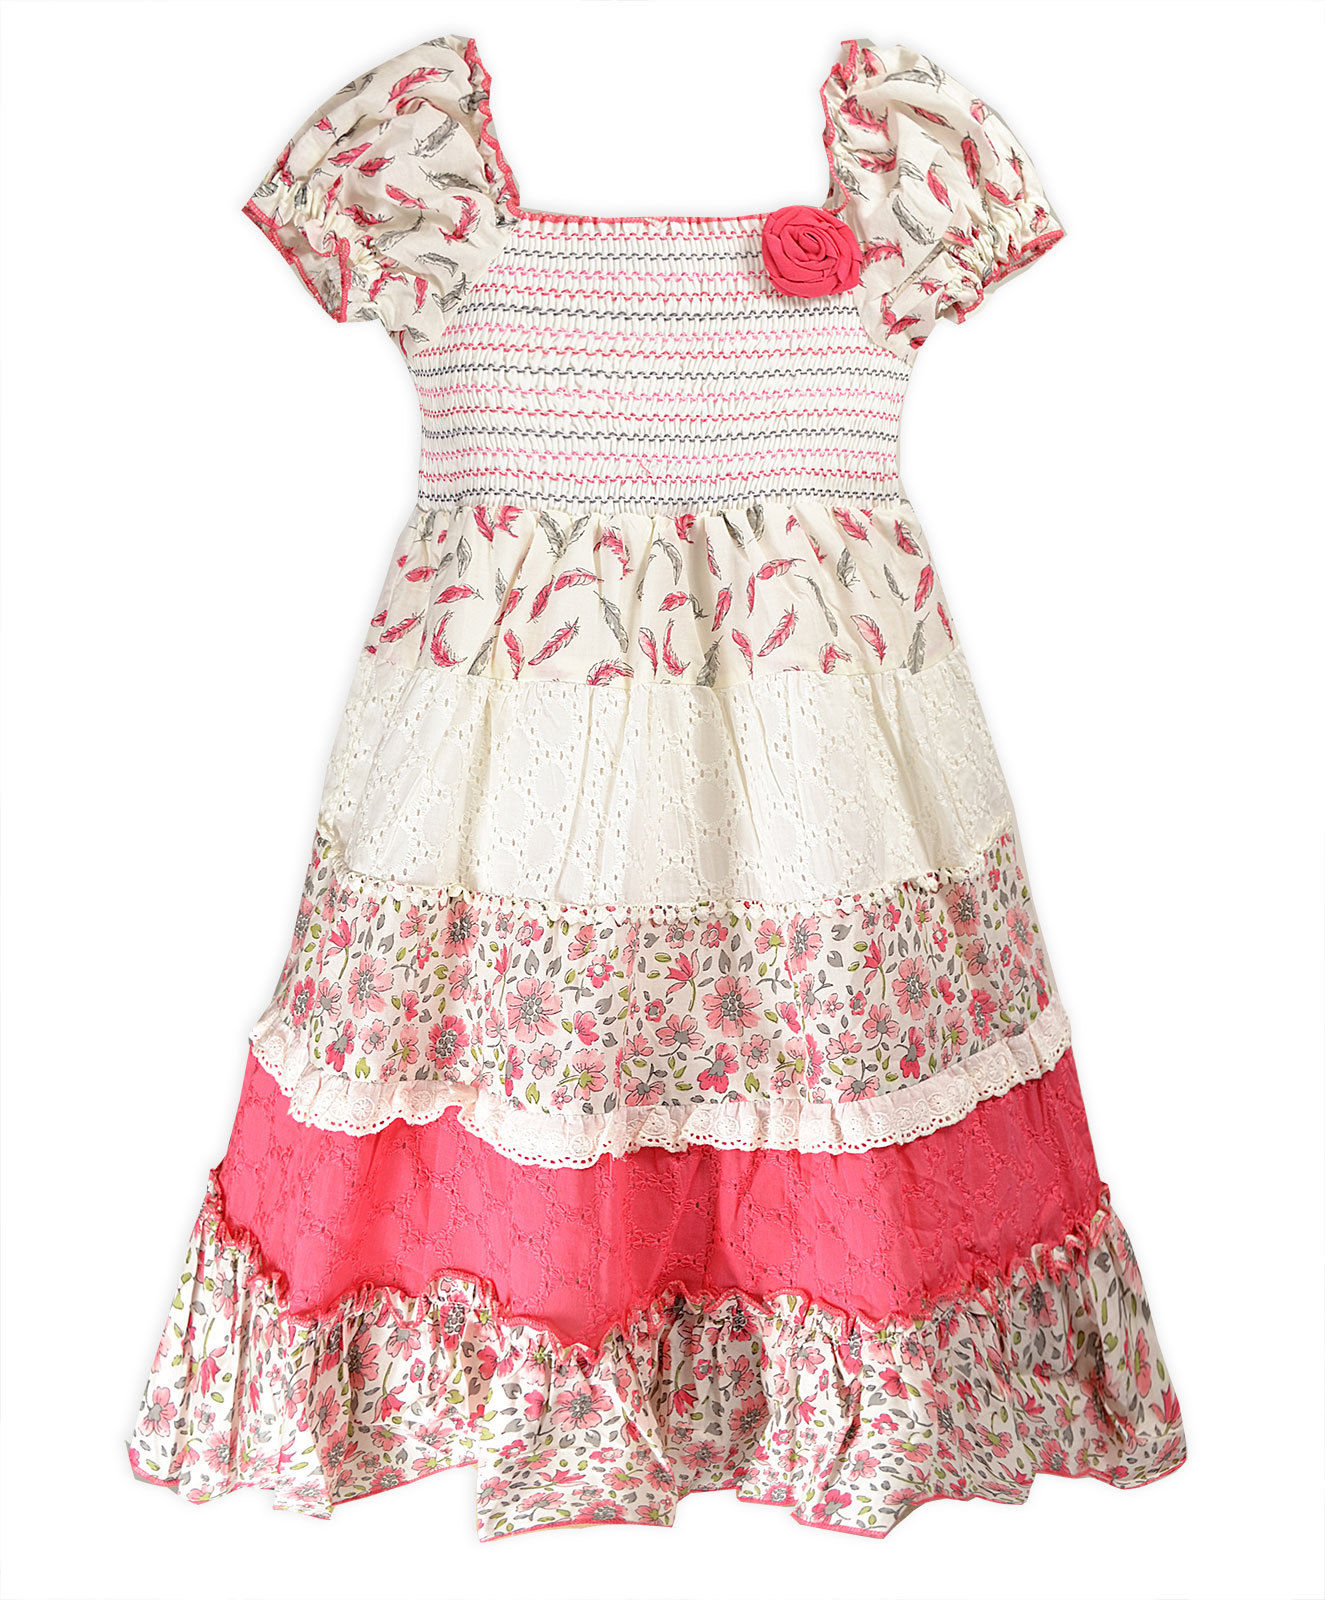 Gypsy dresses for kids